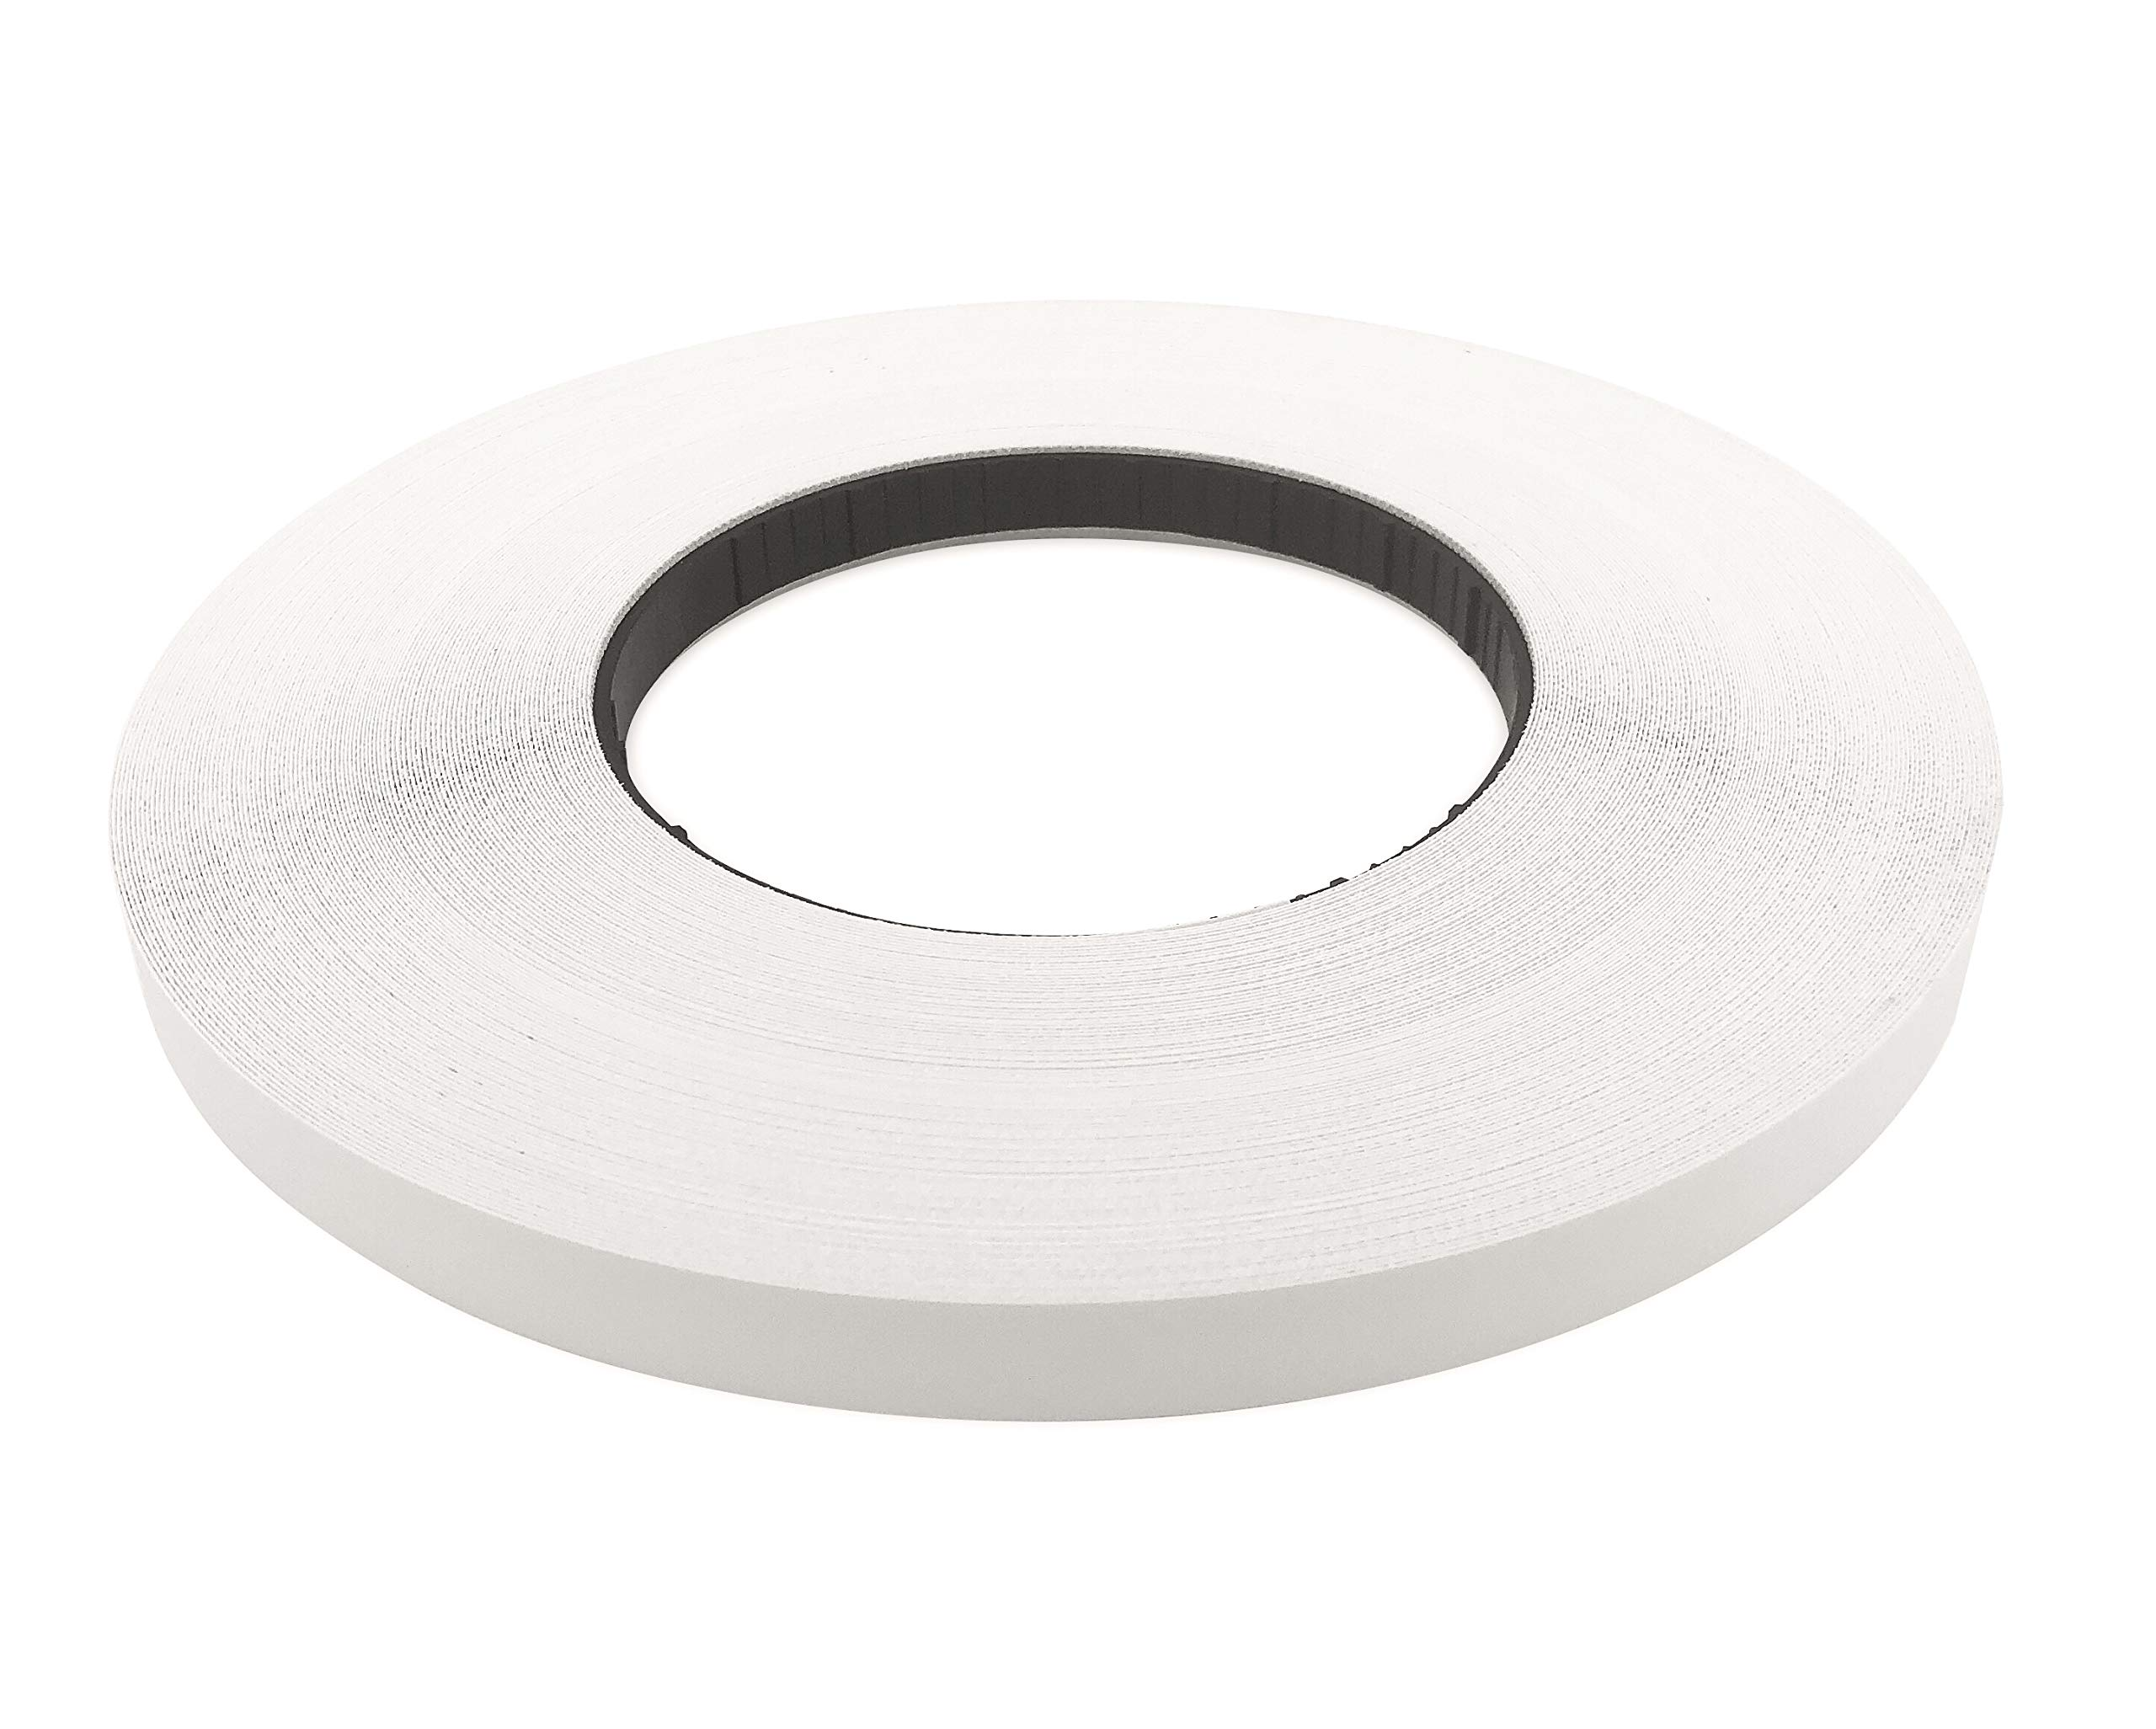 White Melamine 13/16'' X 250' Roll Preglued, White Edge Banding, Flexible White Tape, Easy Application Iron On with Hot Melt Adhesive. Smooth Finish Melamine Edging. Made in USA by Edge Supply